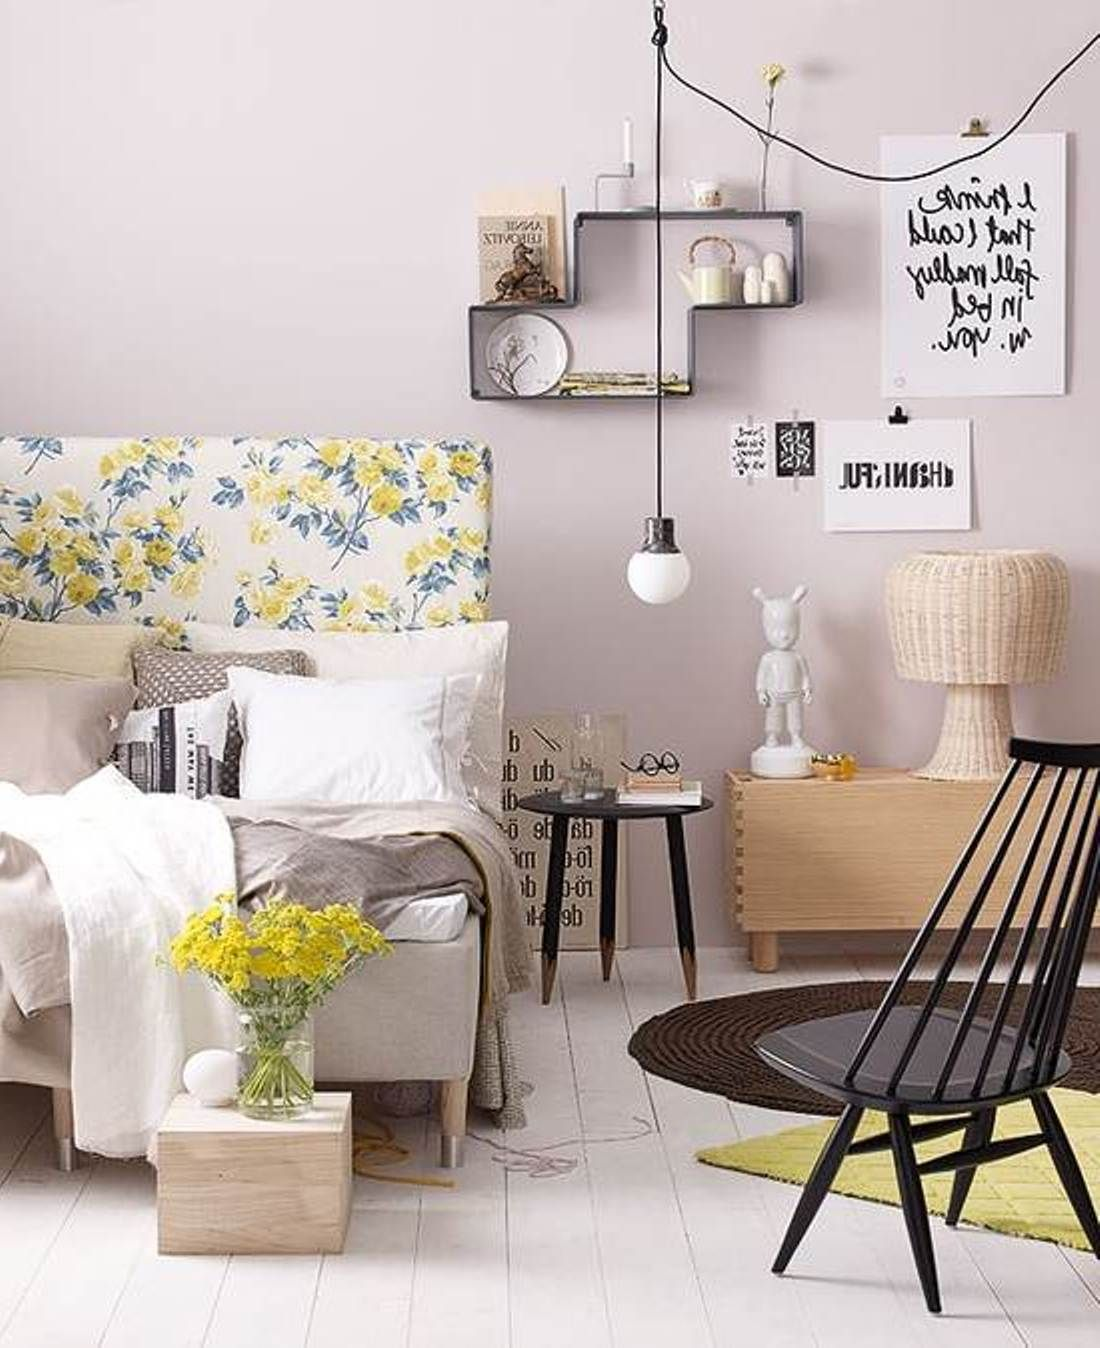 Trendy bedroom decorating ideas for young women better home and garden